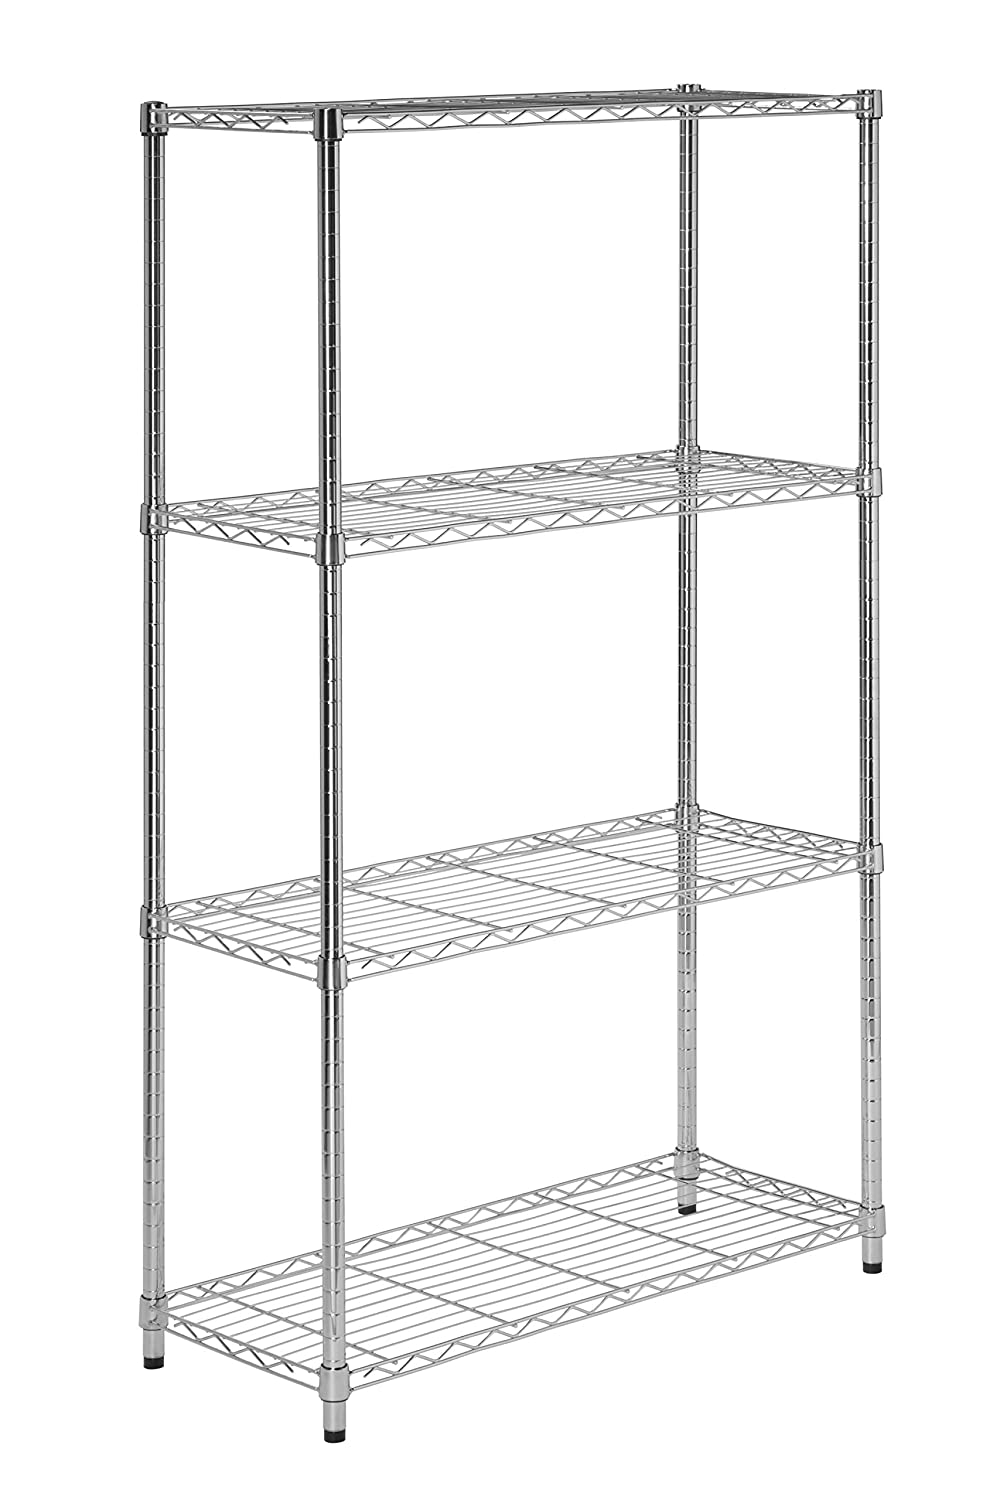 Honey-Can-Do 4-Tier Shelving unit-200 lbs, 4-Tier Chrome